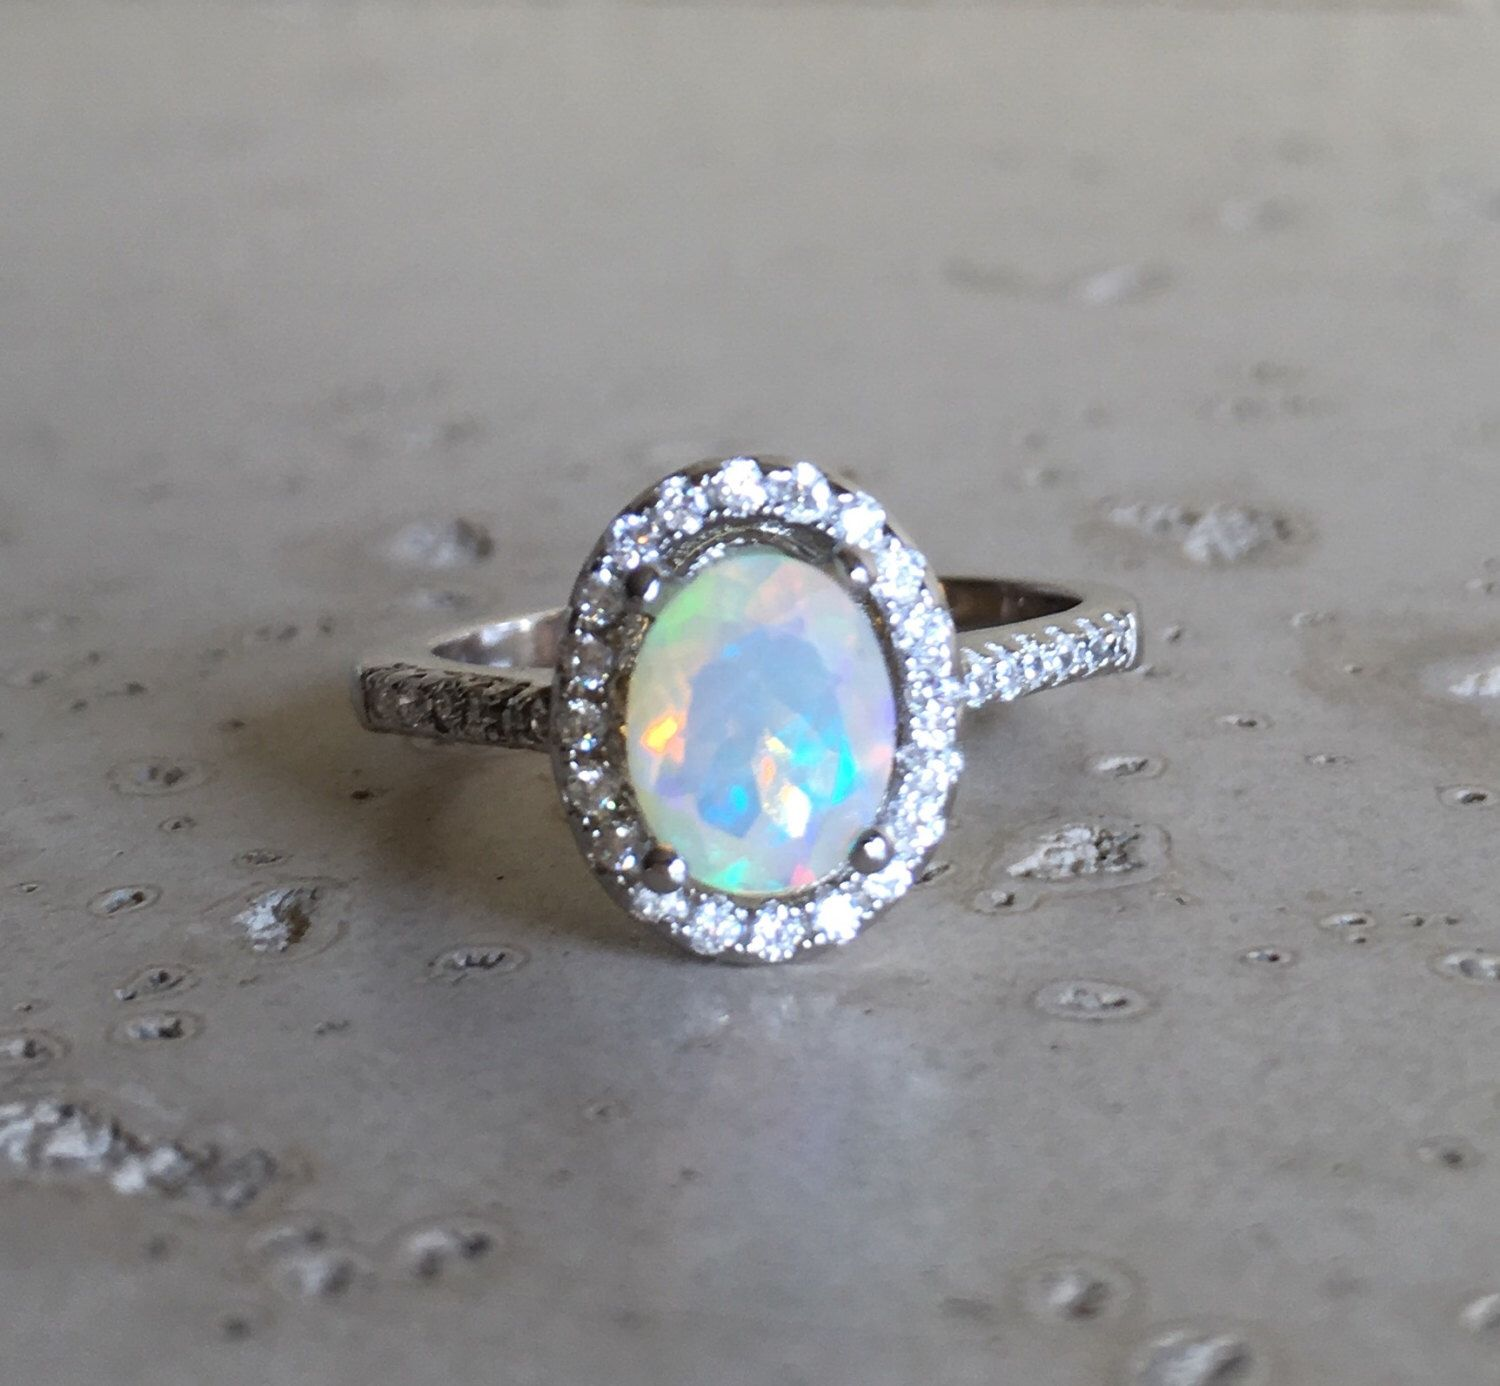 west original birthstone pink glass ring jewelry media vintage october handmade opal rings fine wedding design german